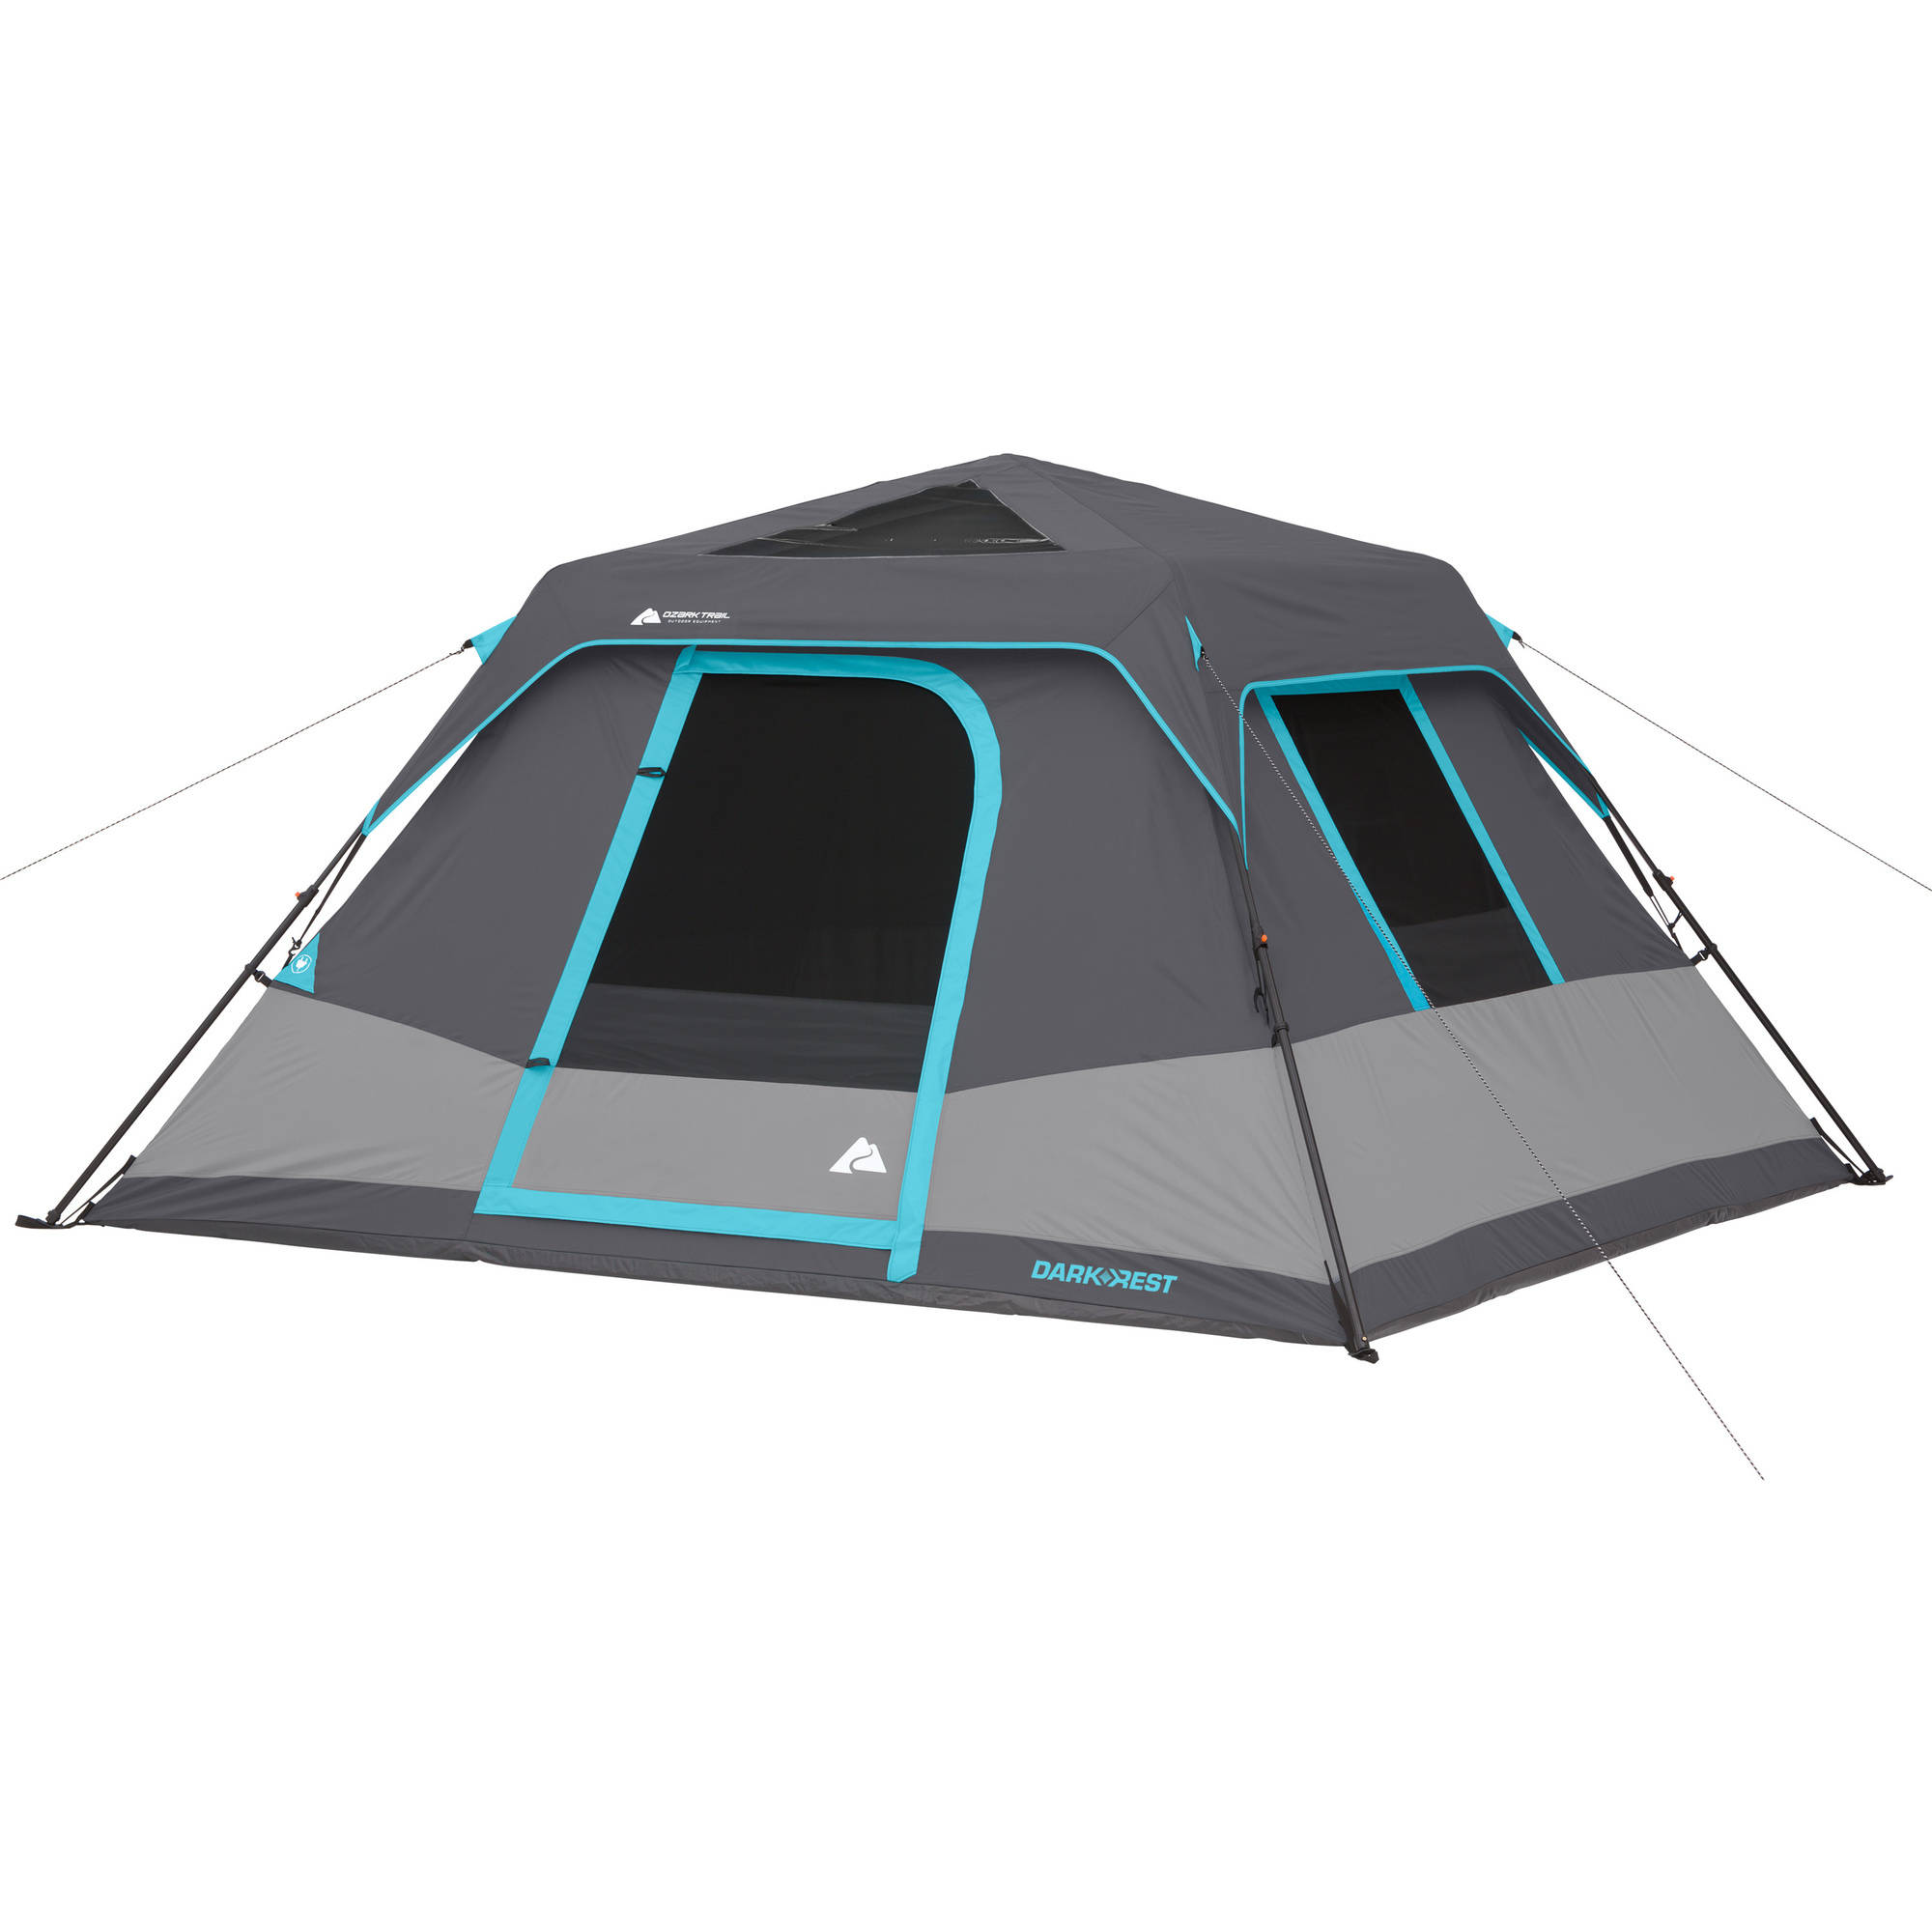 Ozark Trail 6-Person Dark Rest Instant Cabin Tent  sc 1 st  Walmart & Ozark Trail 6-Person Dark Rest Instant Cabin Tent - Walmart.com